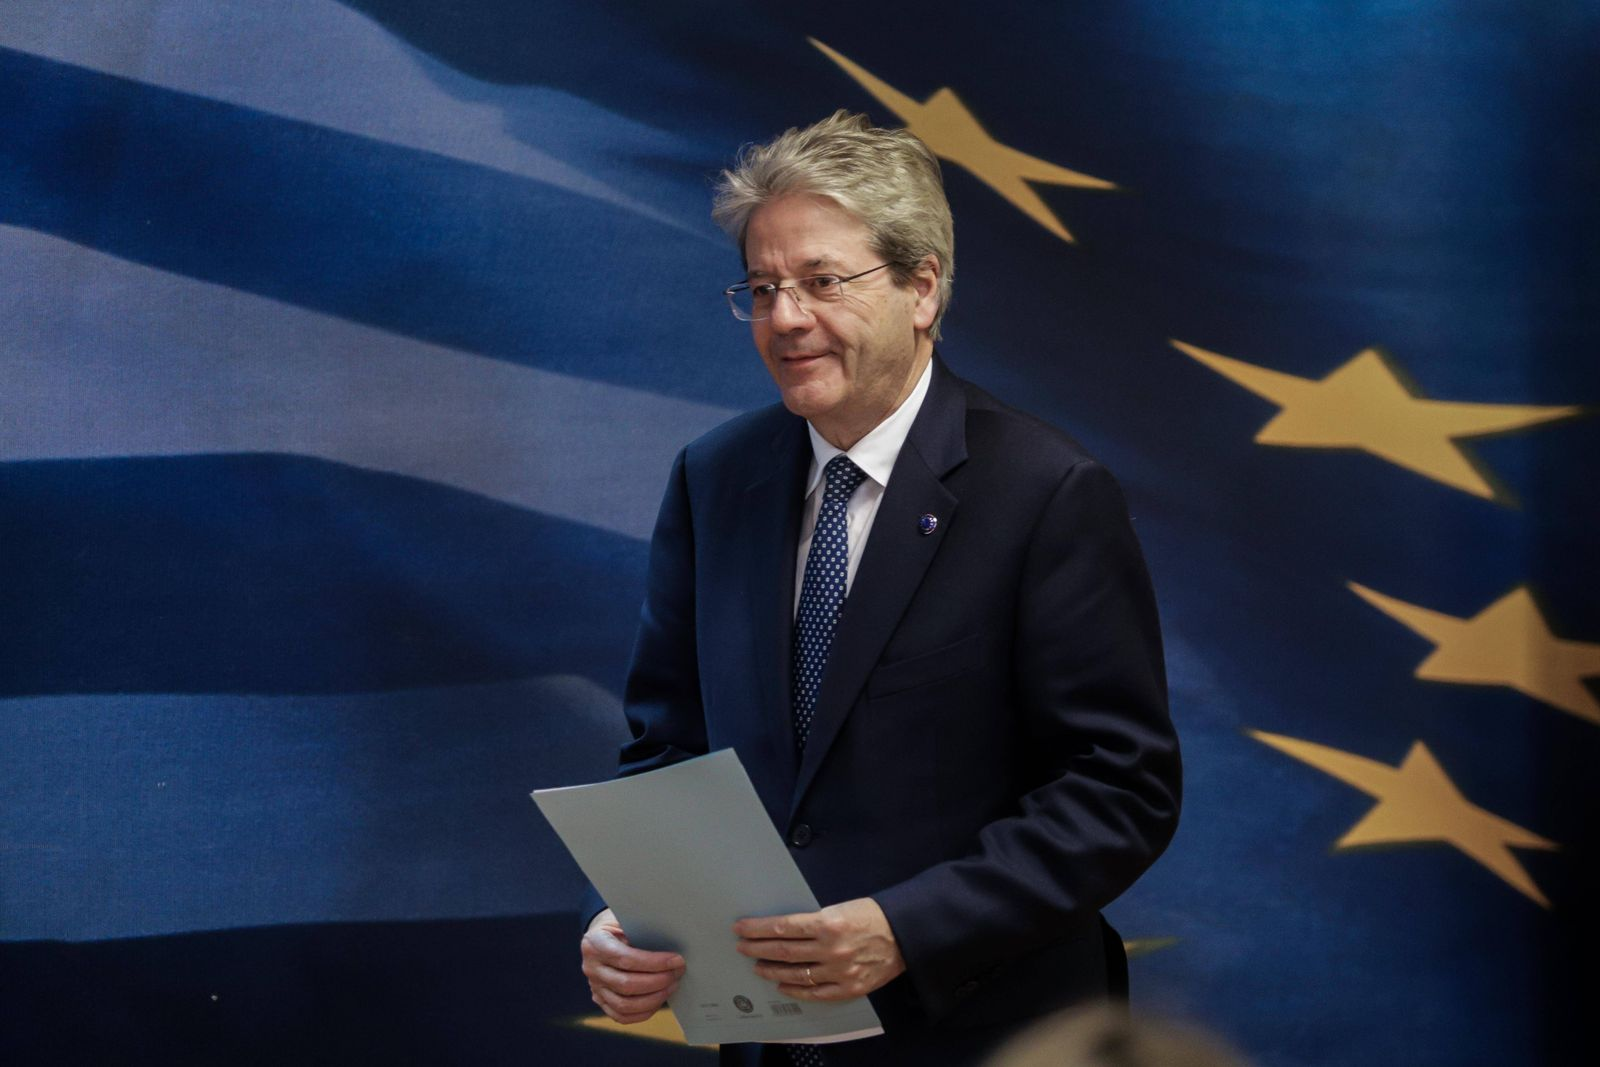 News Bilder des Tages February 6, 2020, Athens, Greece: Greece s Finance Minister ,Christos Staikouras , speaks with the